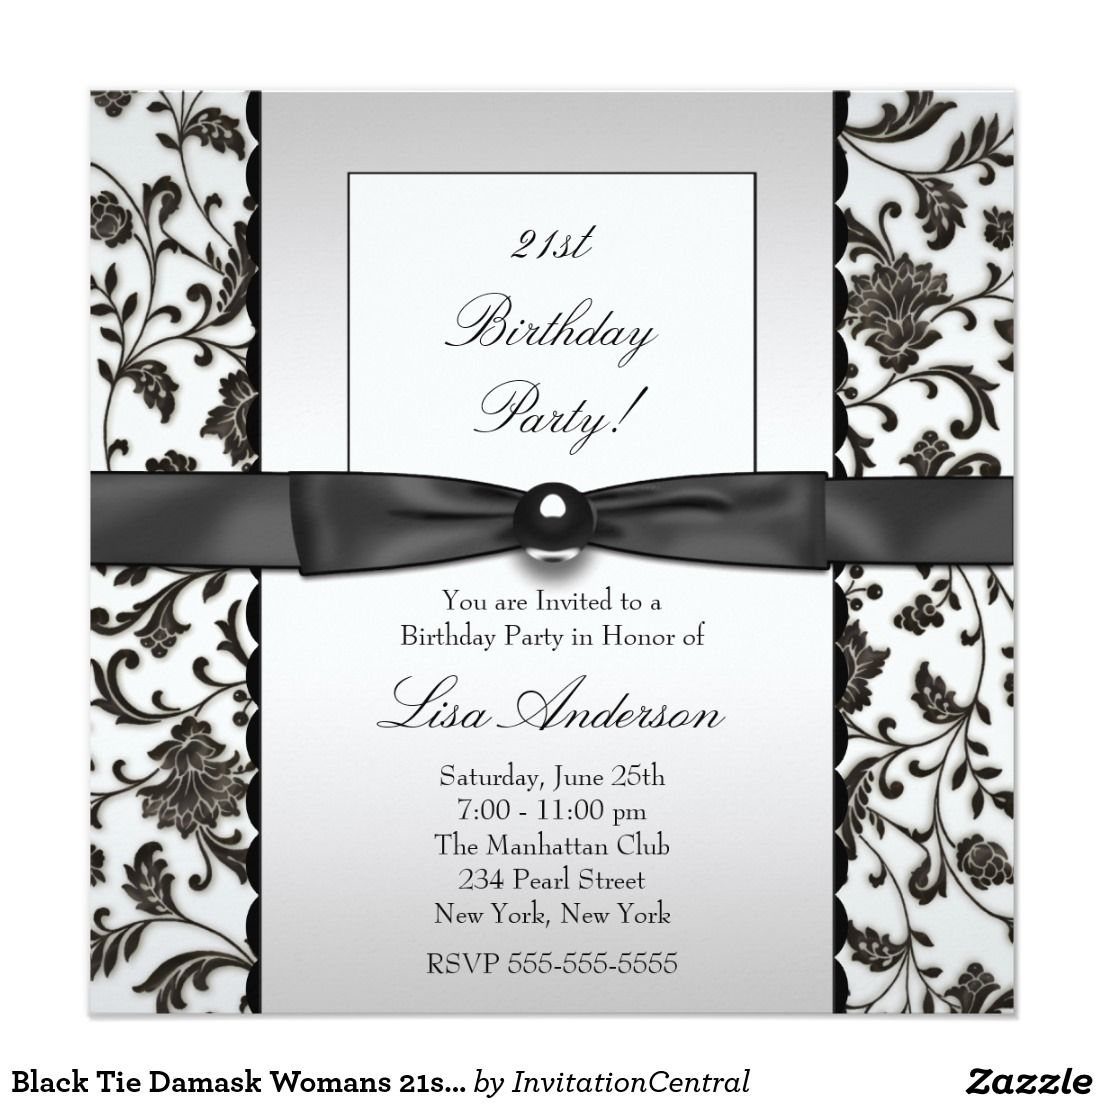 Black Tie Damask Womans 21st Birthday Party Invitation | 50th ...